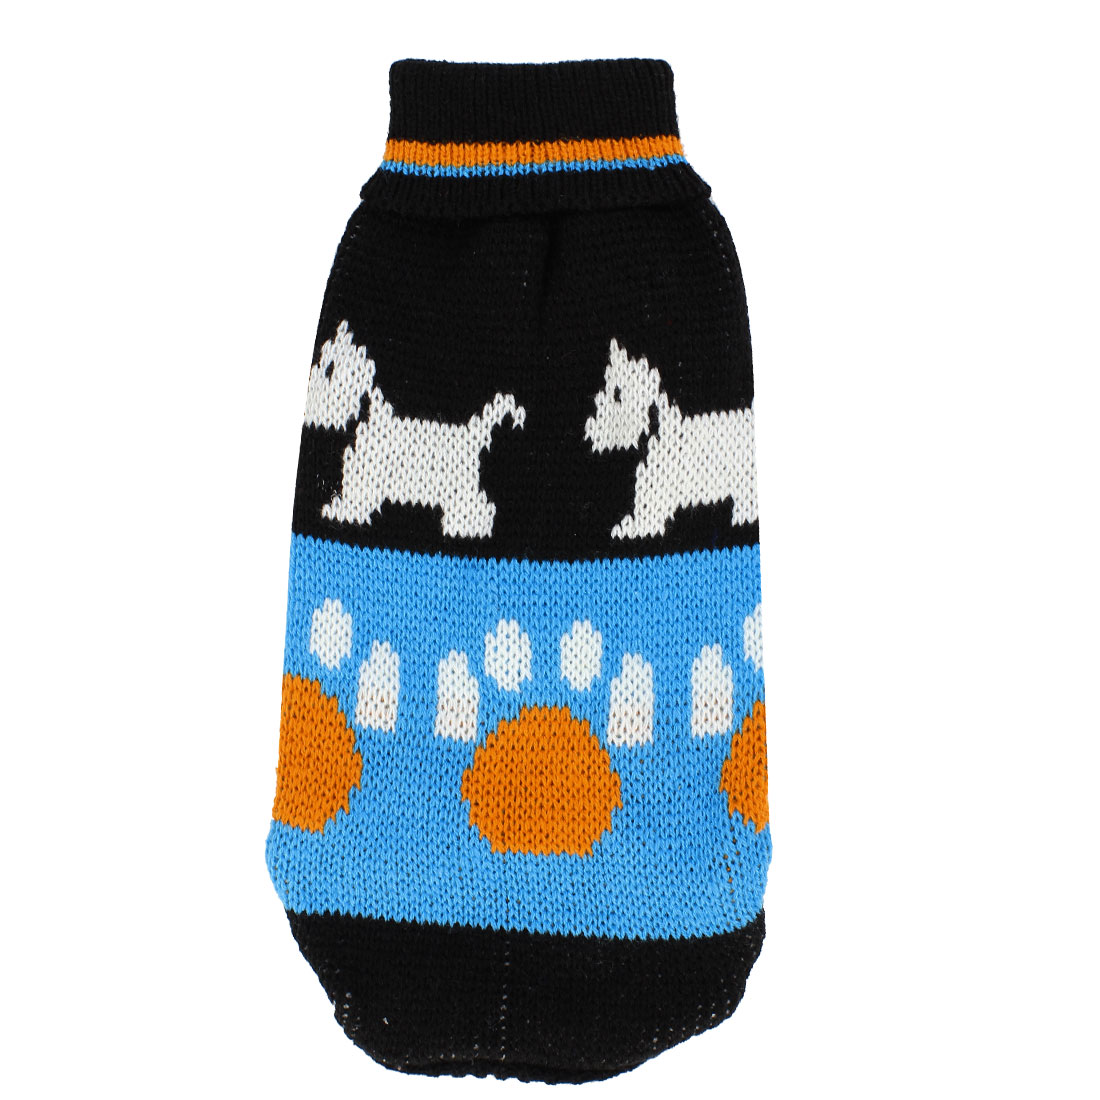 Pet Doggy Yorkie Black Blue Ribbed Cuff Dog Pattern Knitwear Turtleneck Apparel Sweater Size XXS